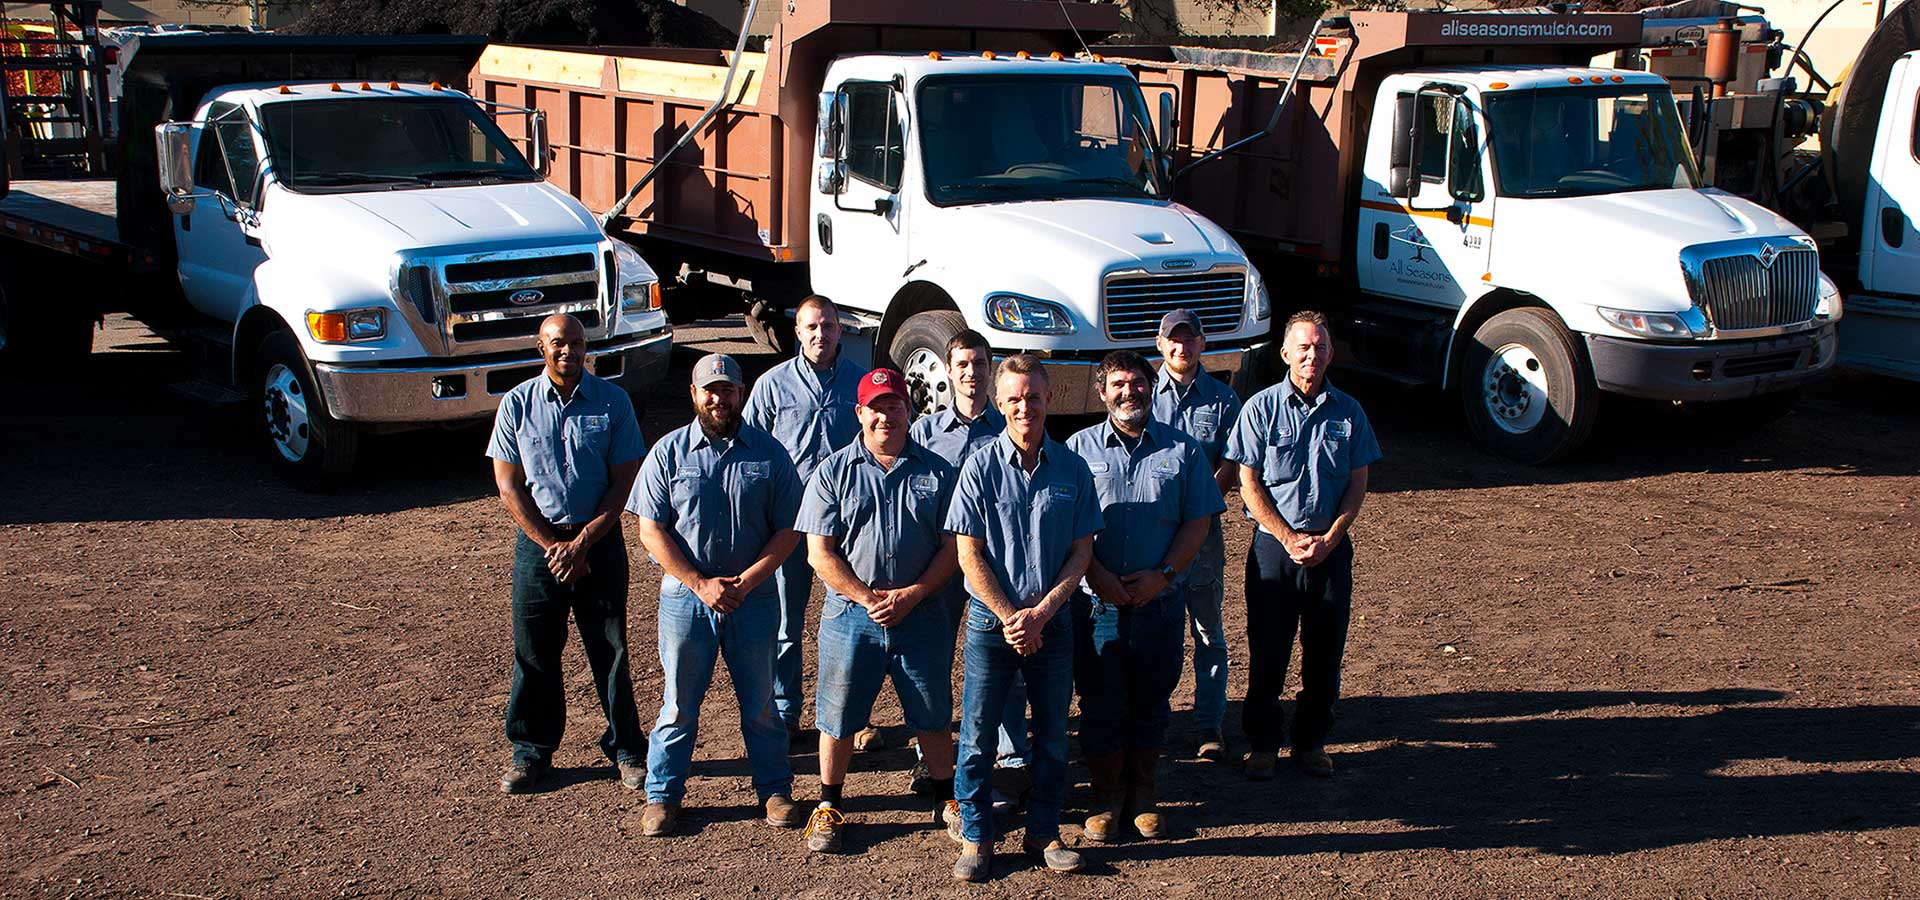 All Seasons staff with trucks